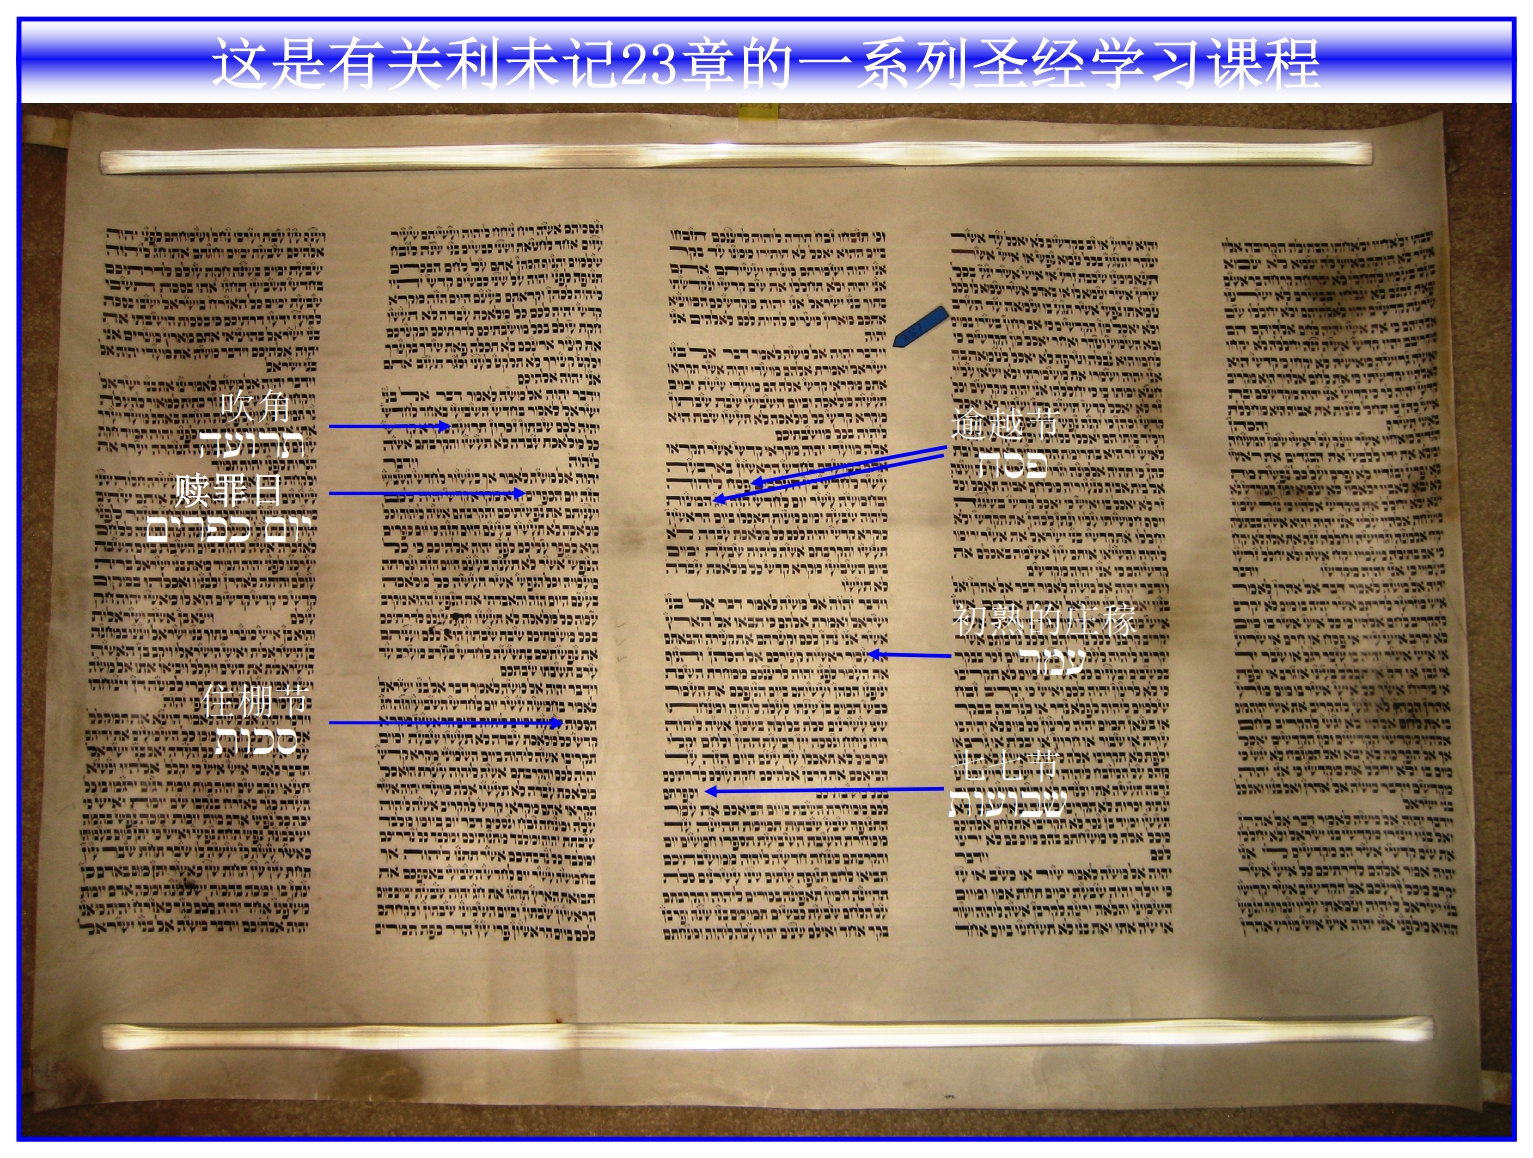 Torah sheet showing the Feasts of the Lord Chinese section